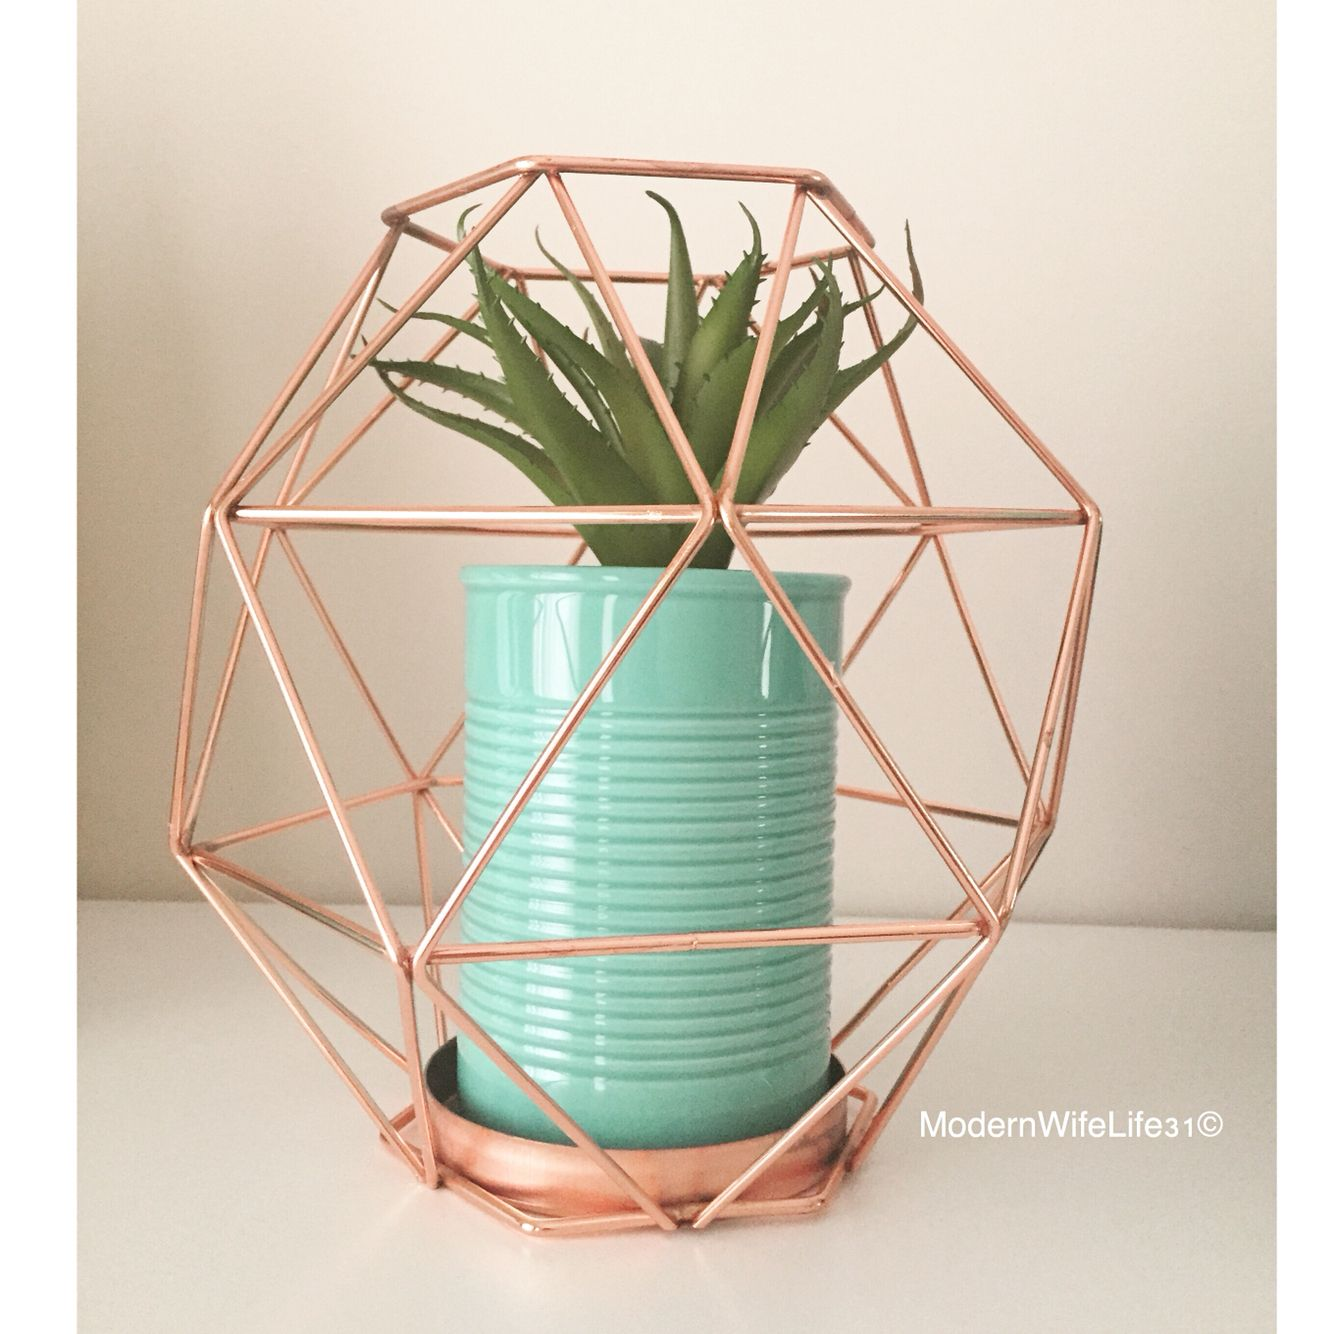 Kmart Australia copper geo candle holder with turquoise plant pot